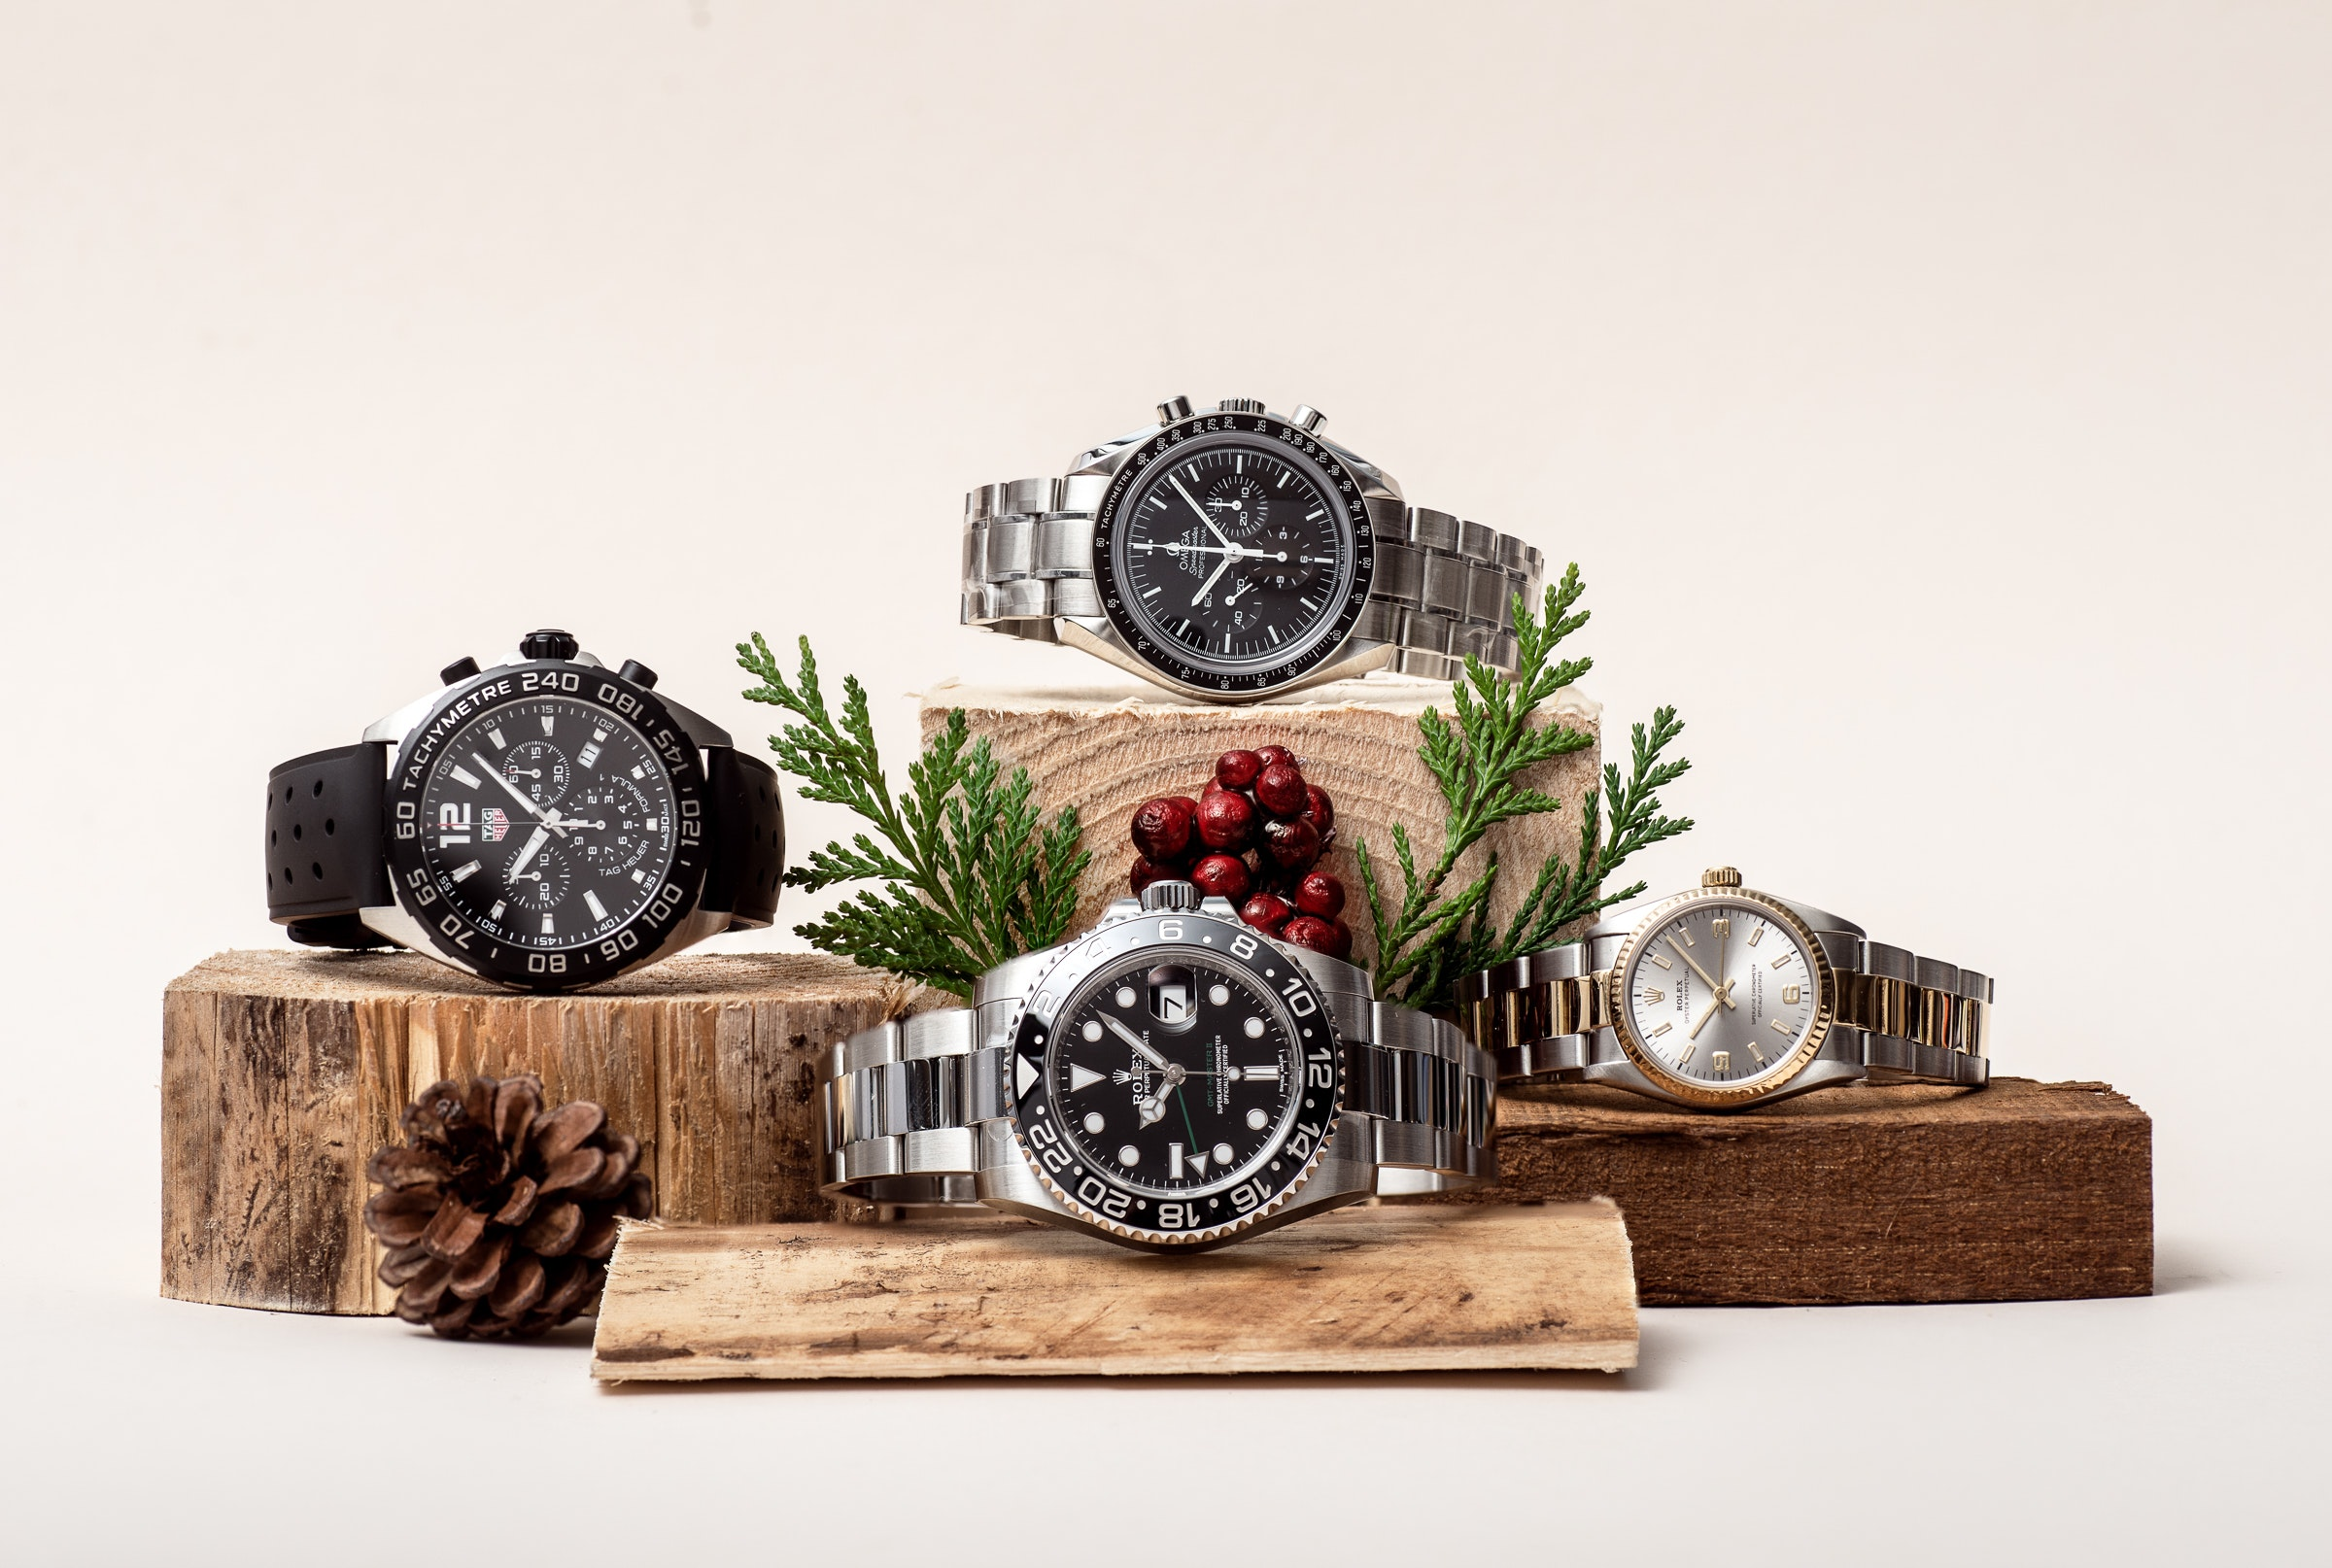 TREND ALERT: What are the six most popular watches this Christmas season?